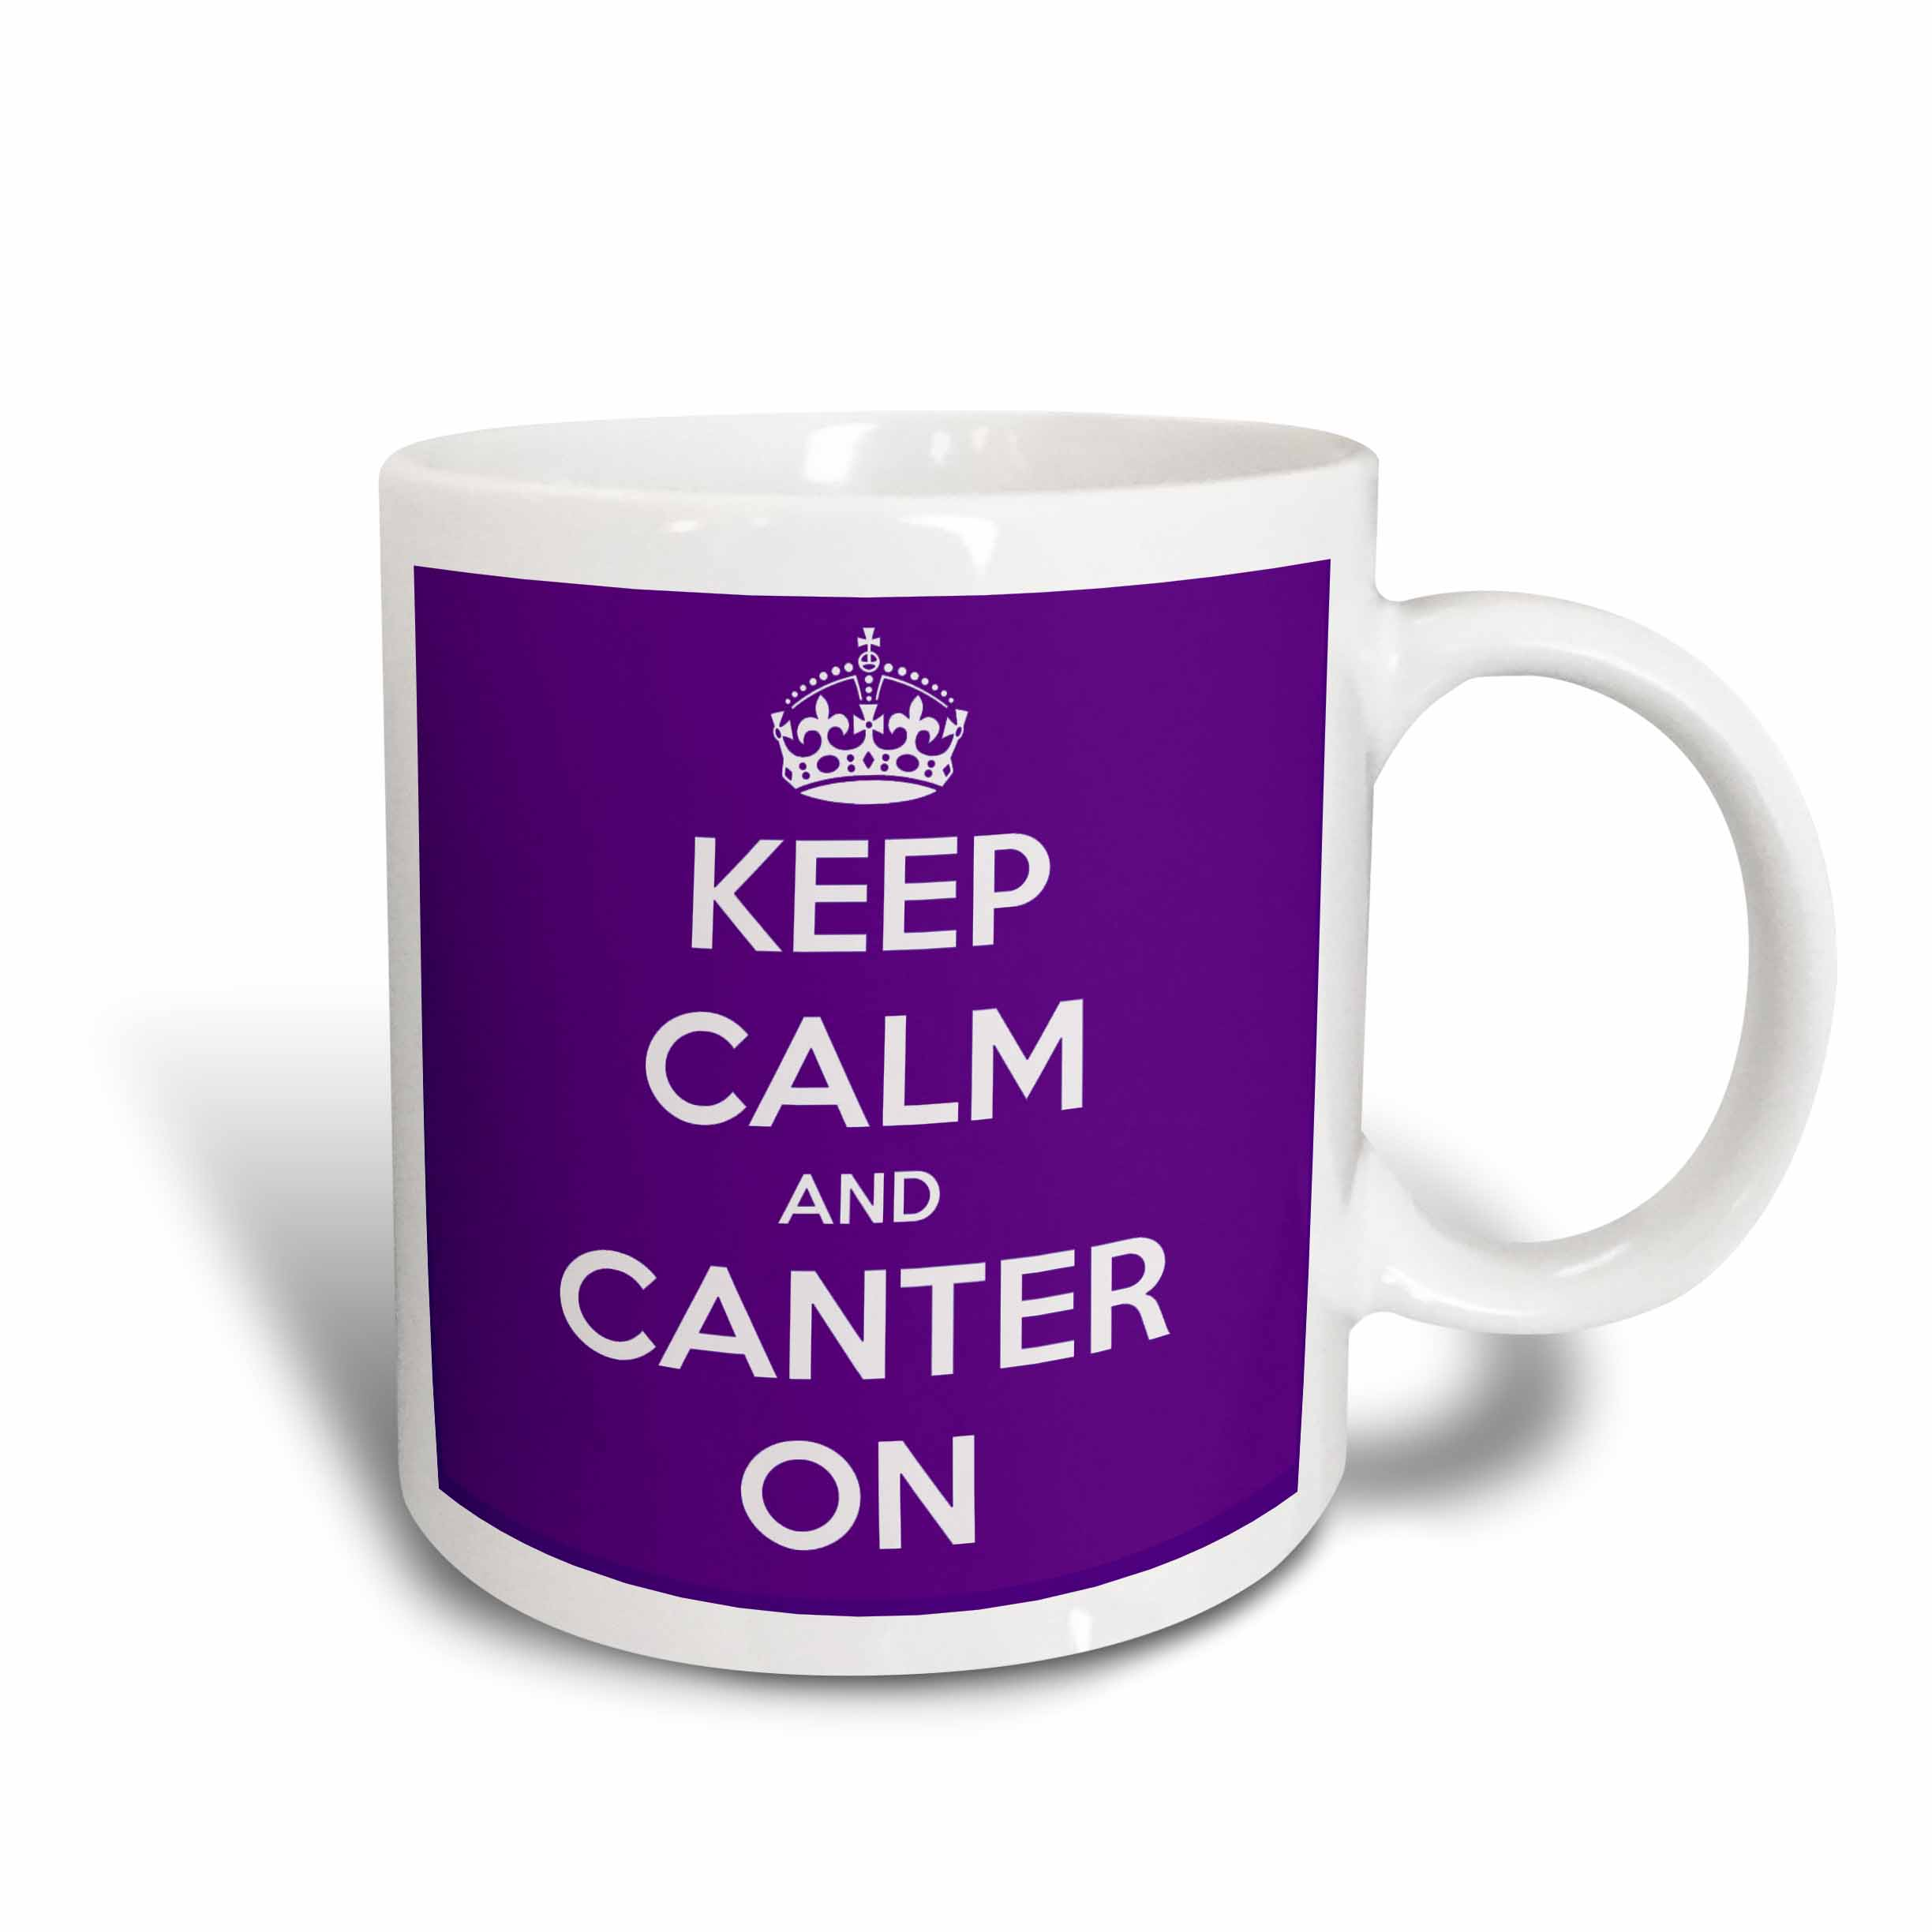 3dRose Keep calm and canter on. Purple., Ceramic Mug, 11-ounce